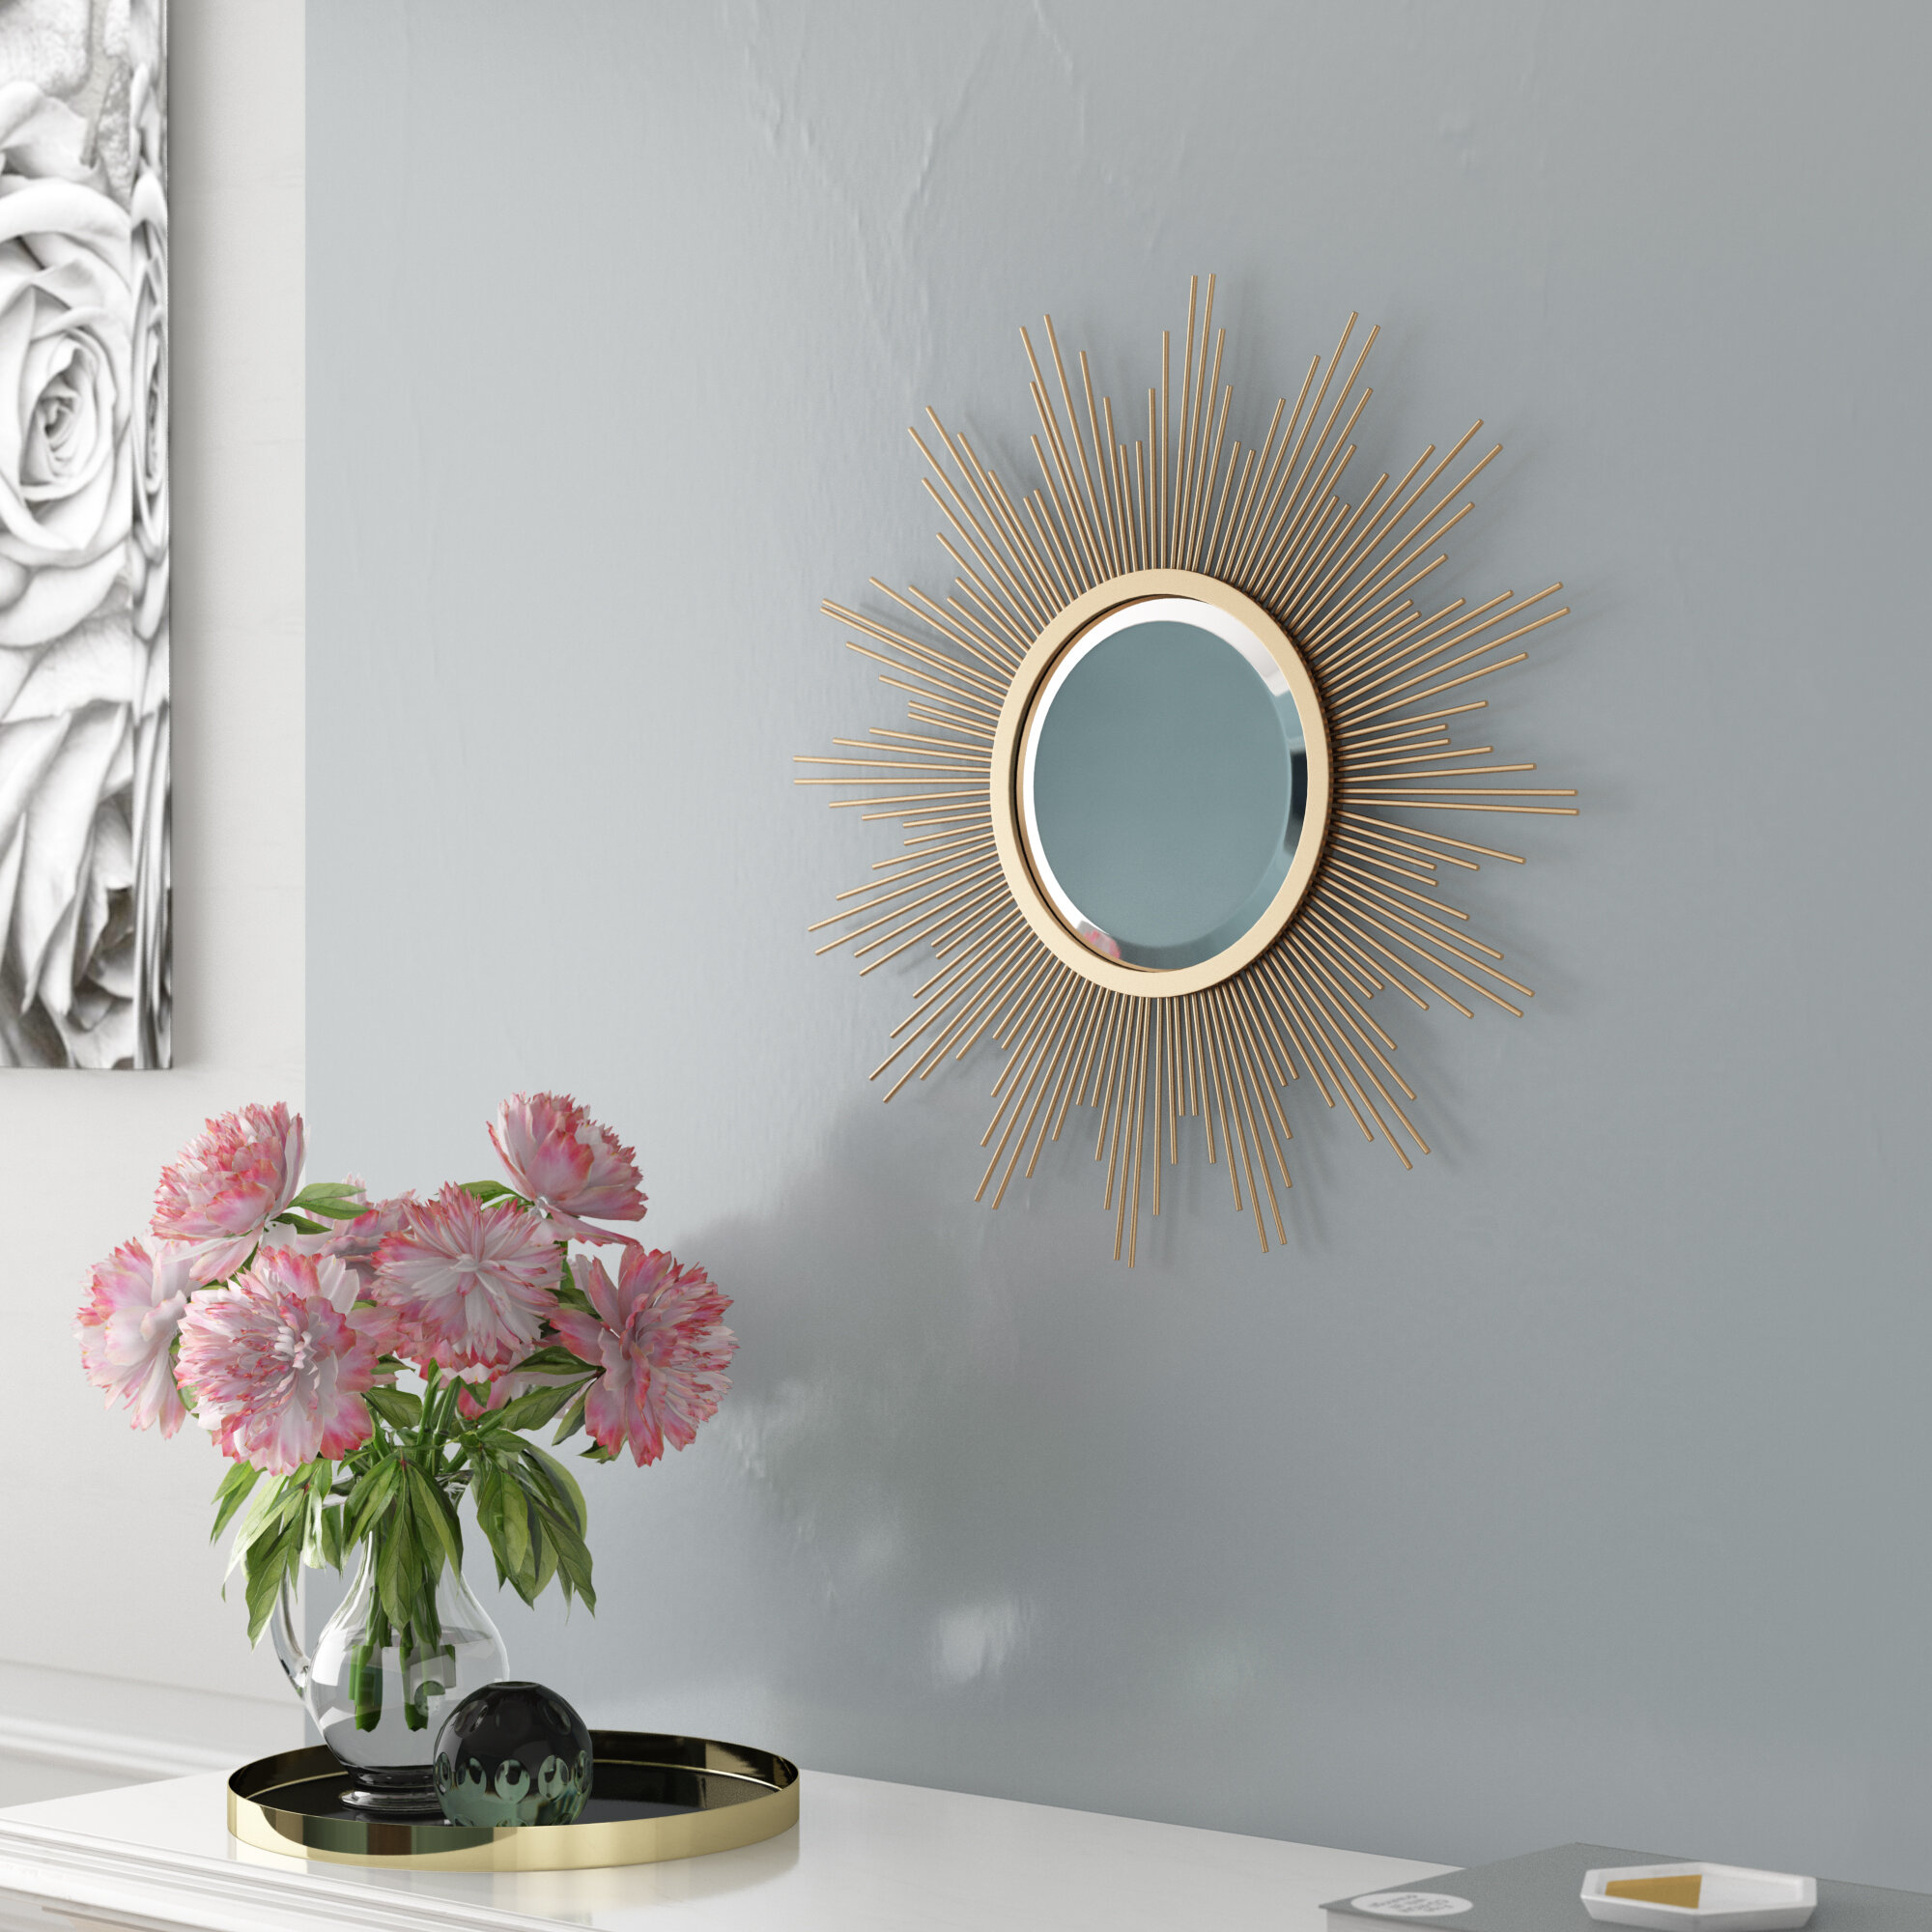 Glasser Starburst Modern & Contemporary Beveled Wall Mirror Intended For Dandre Wall Mirrors (Photo 13 of 20)